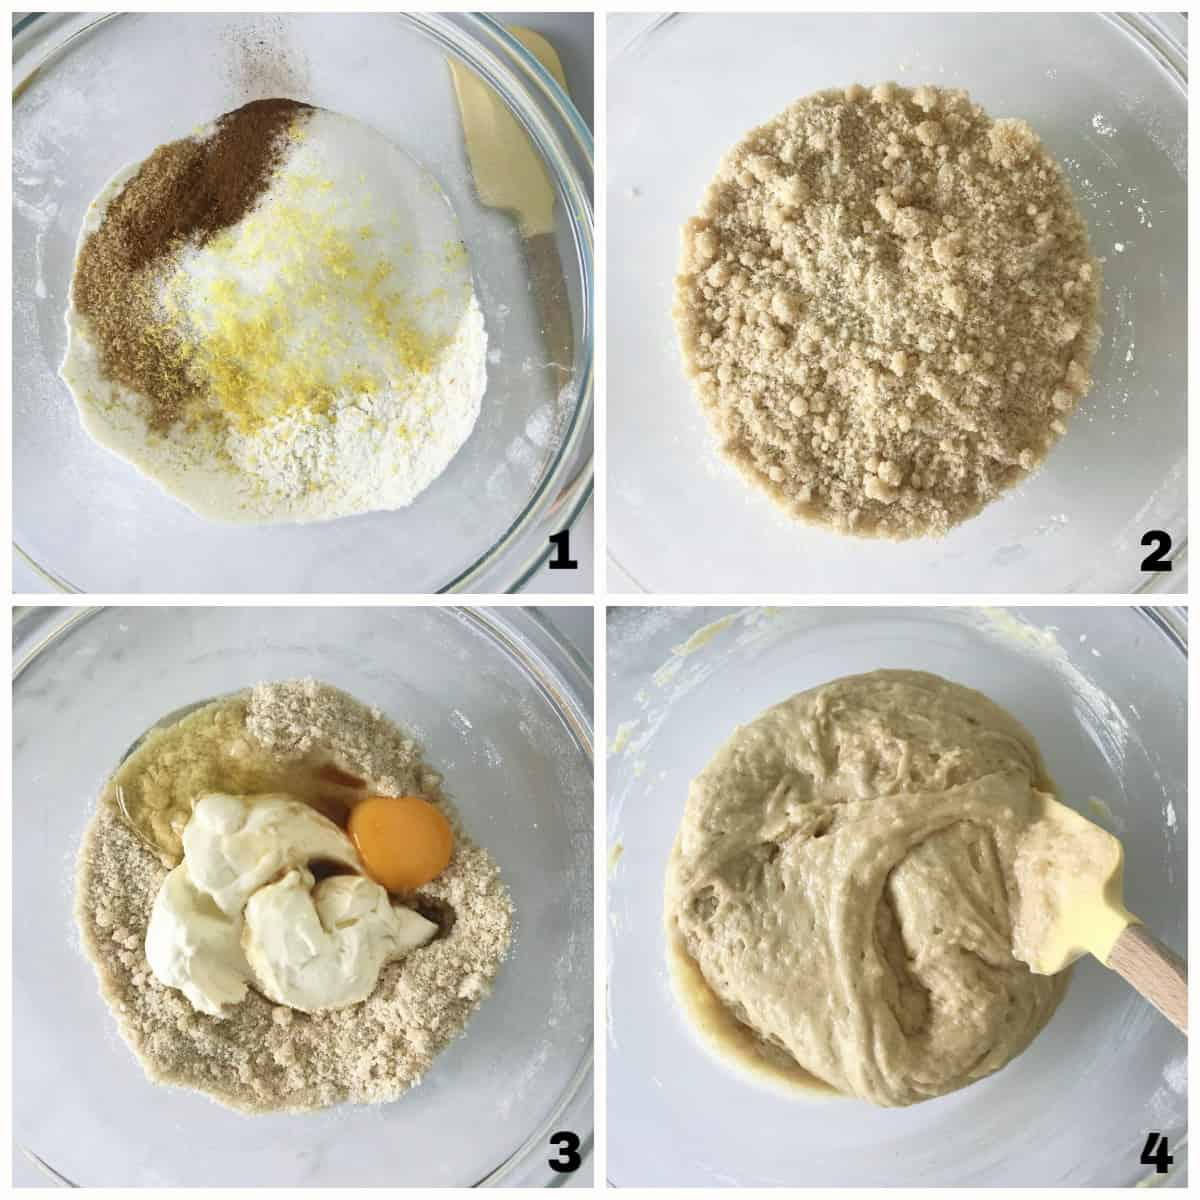 Image collage of glass bowls with dry ingredients, making crumble, adding egg and mixing